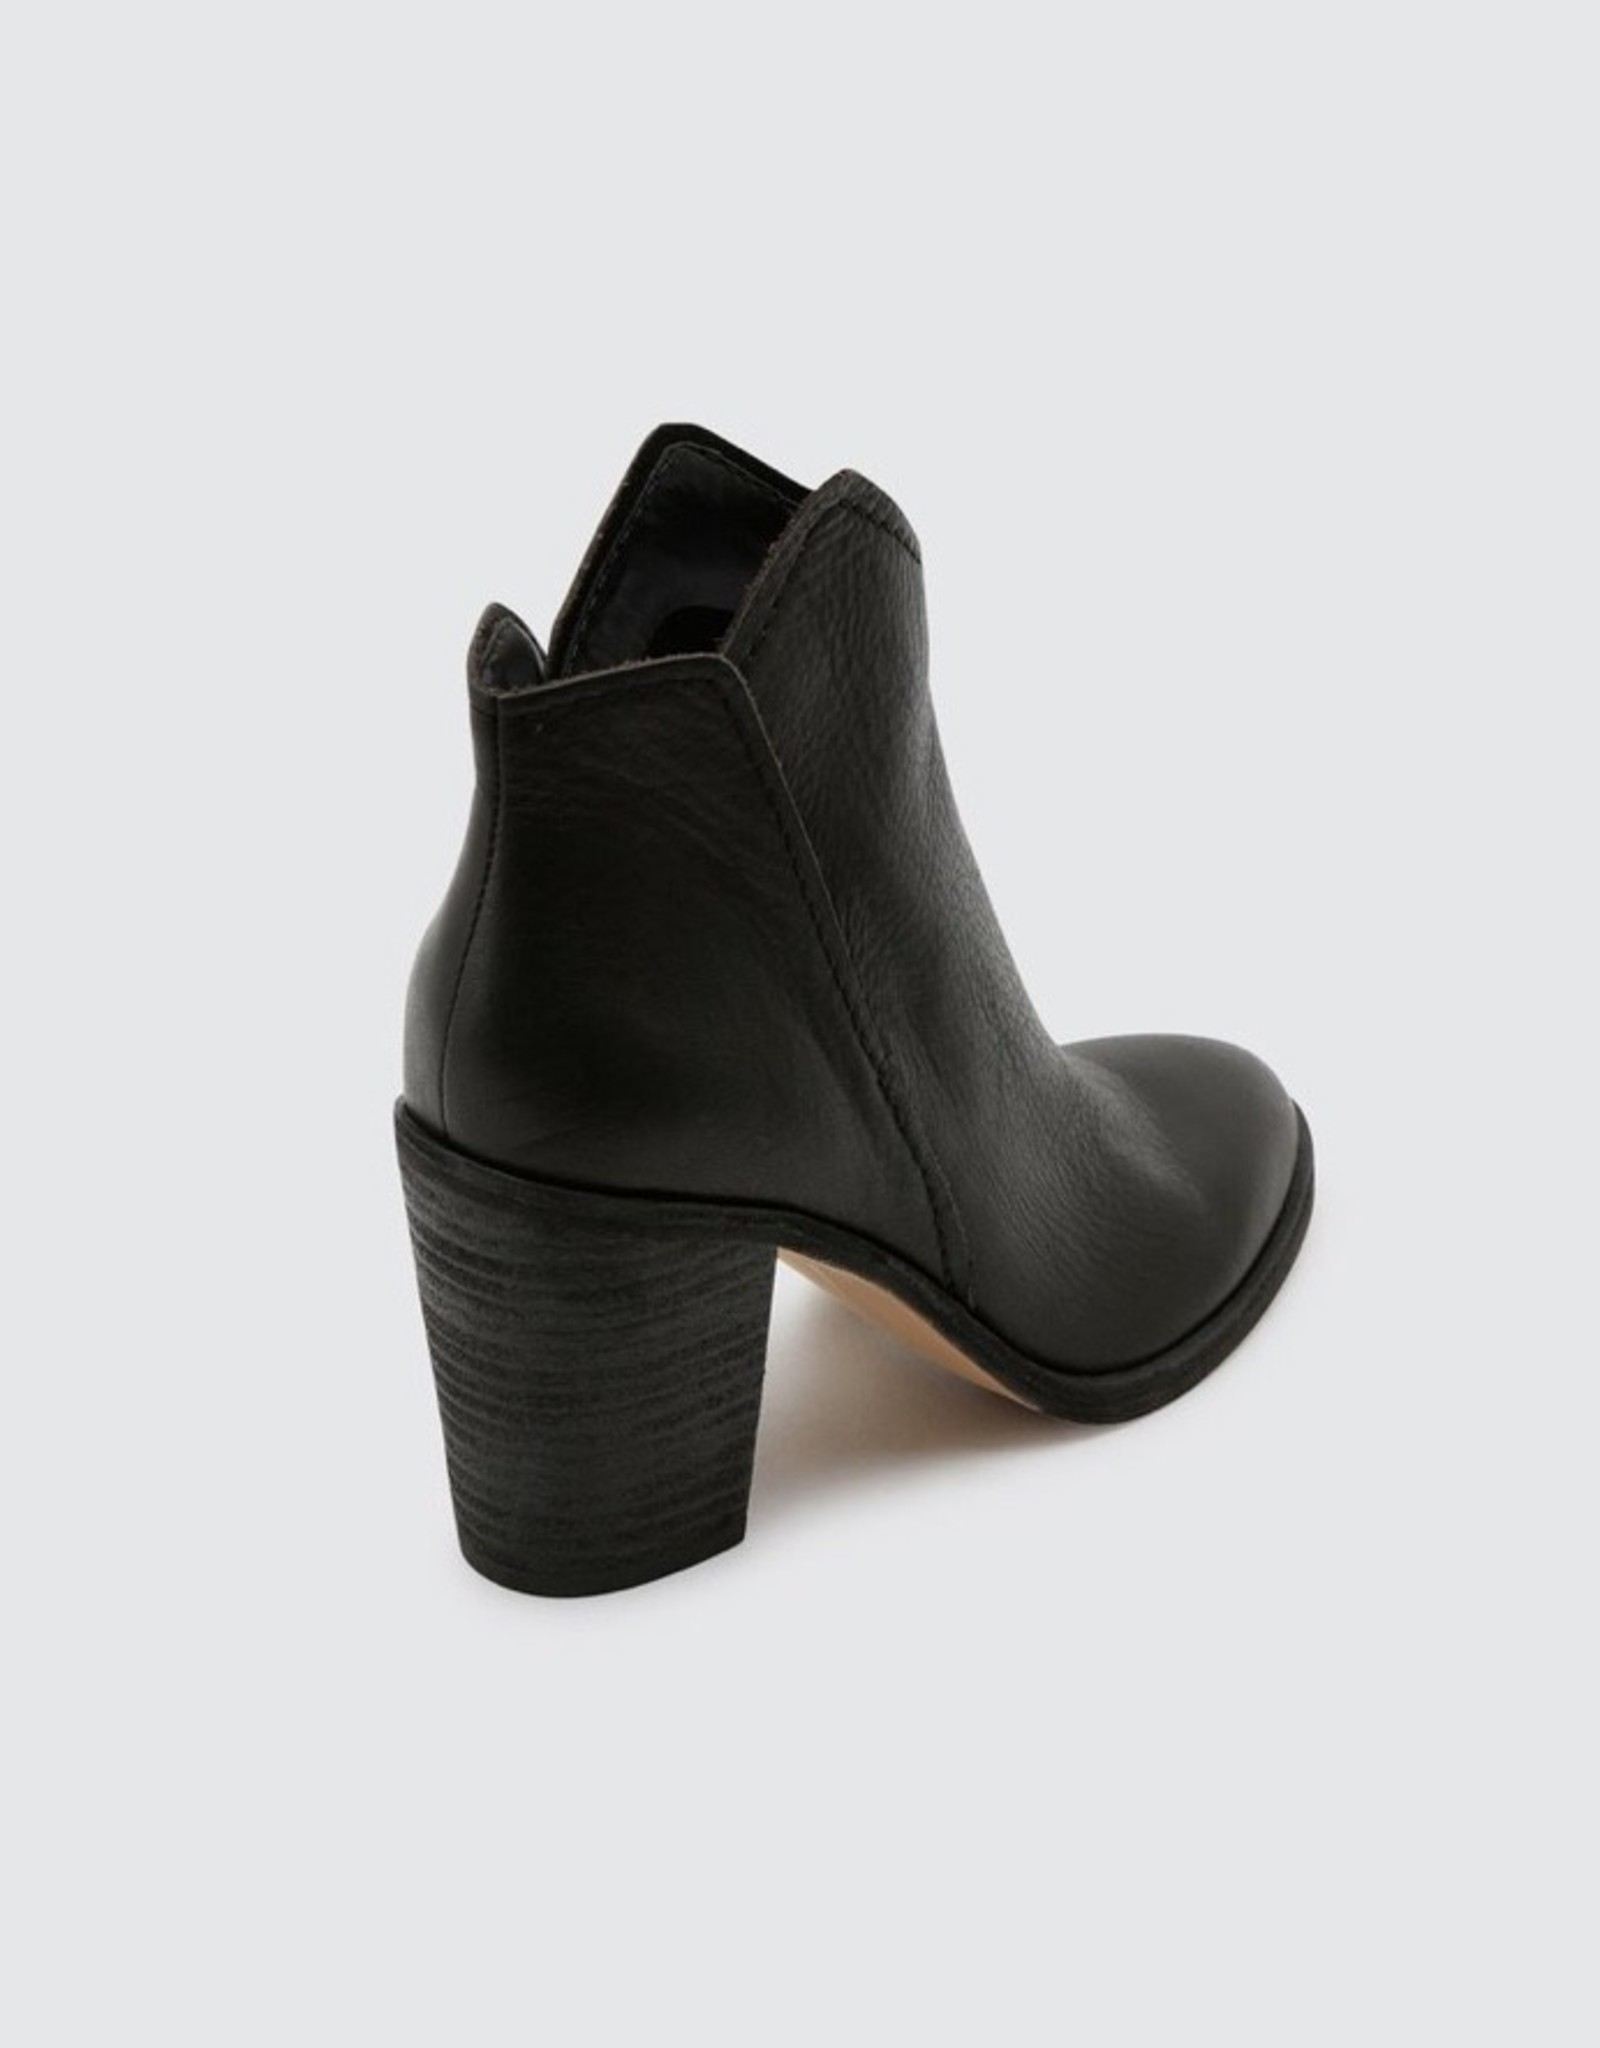 DOLCE VITA Shep Ankle Bootie